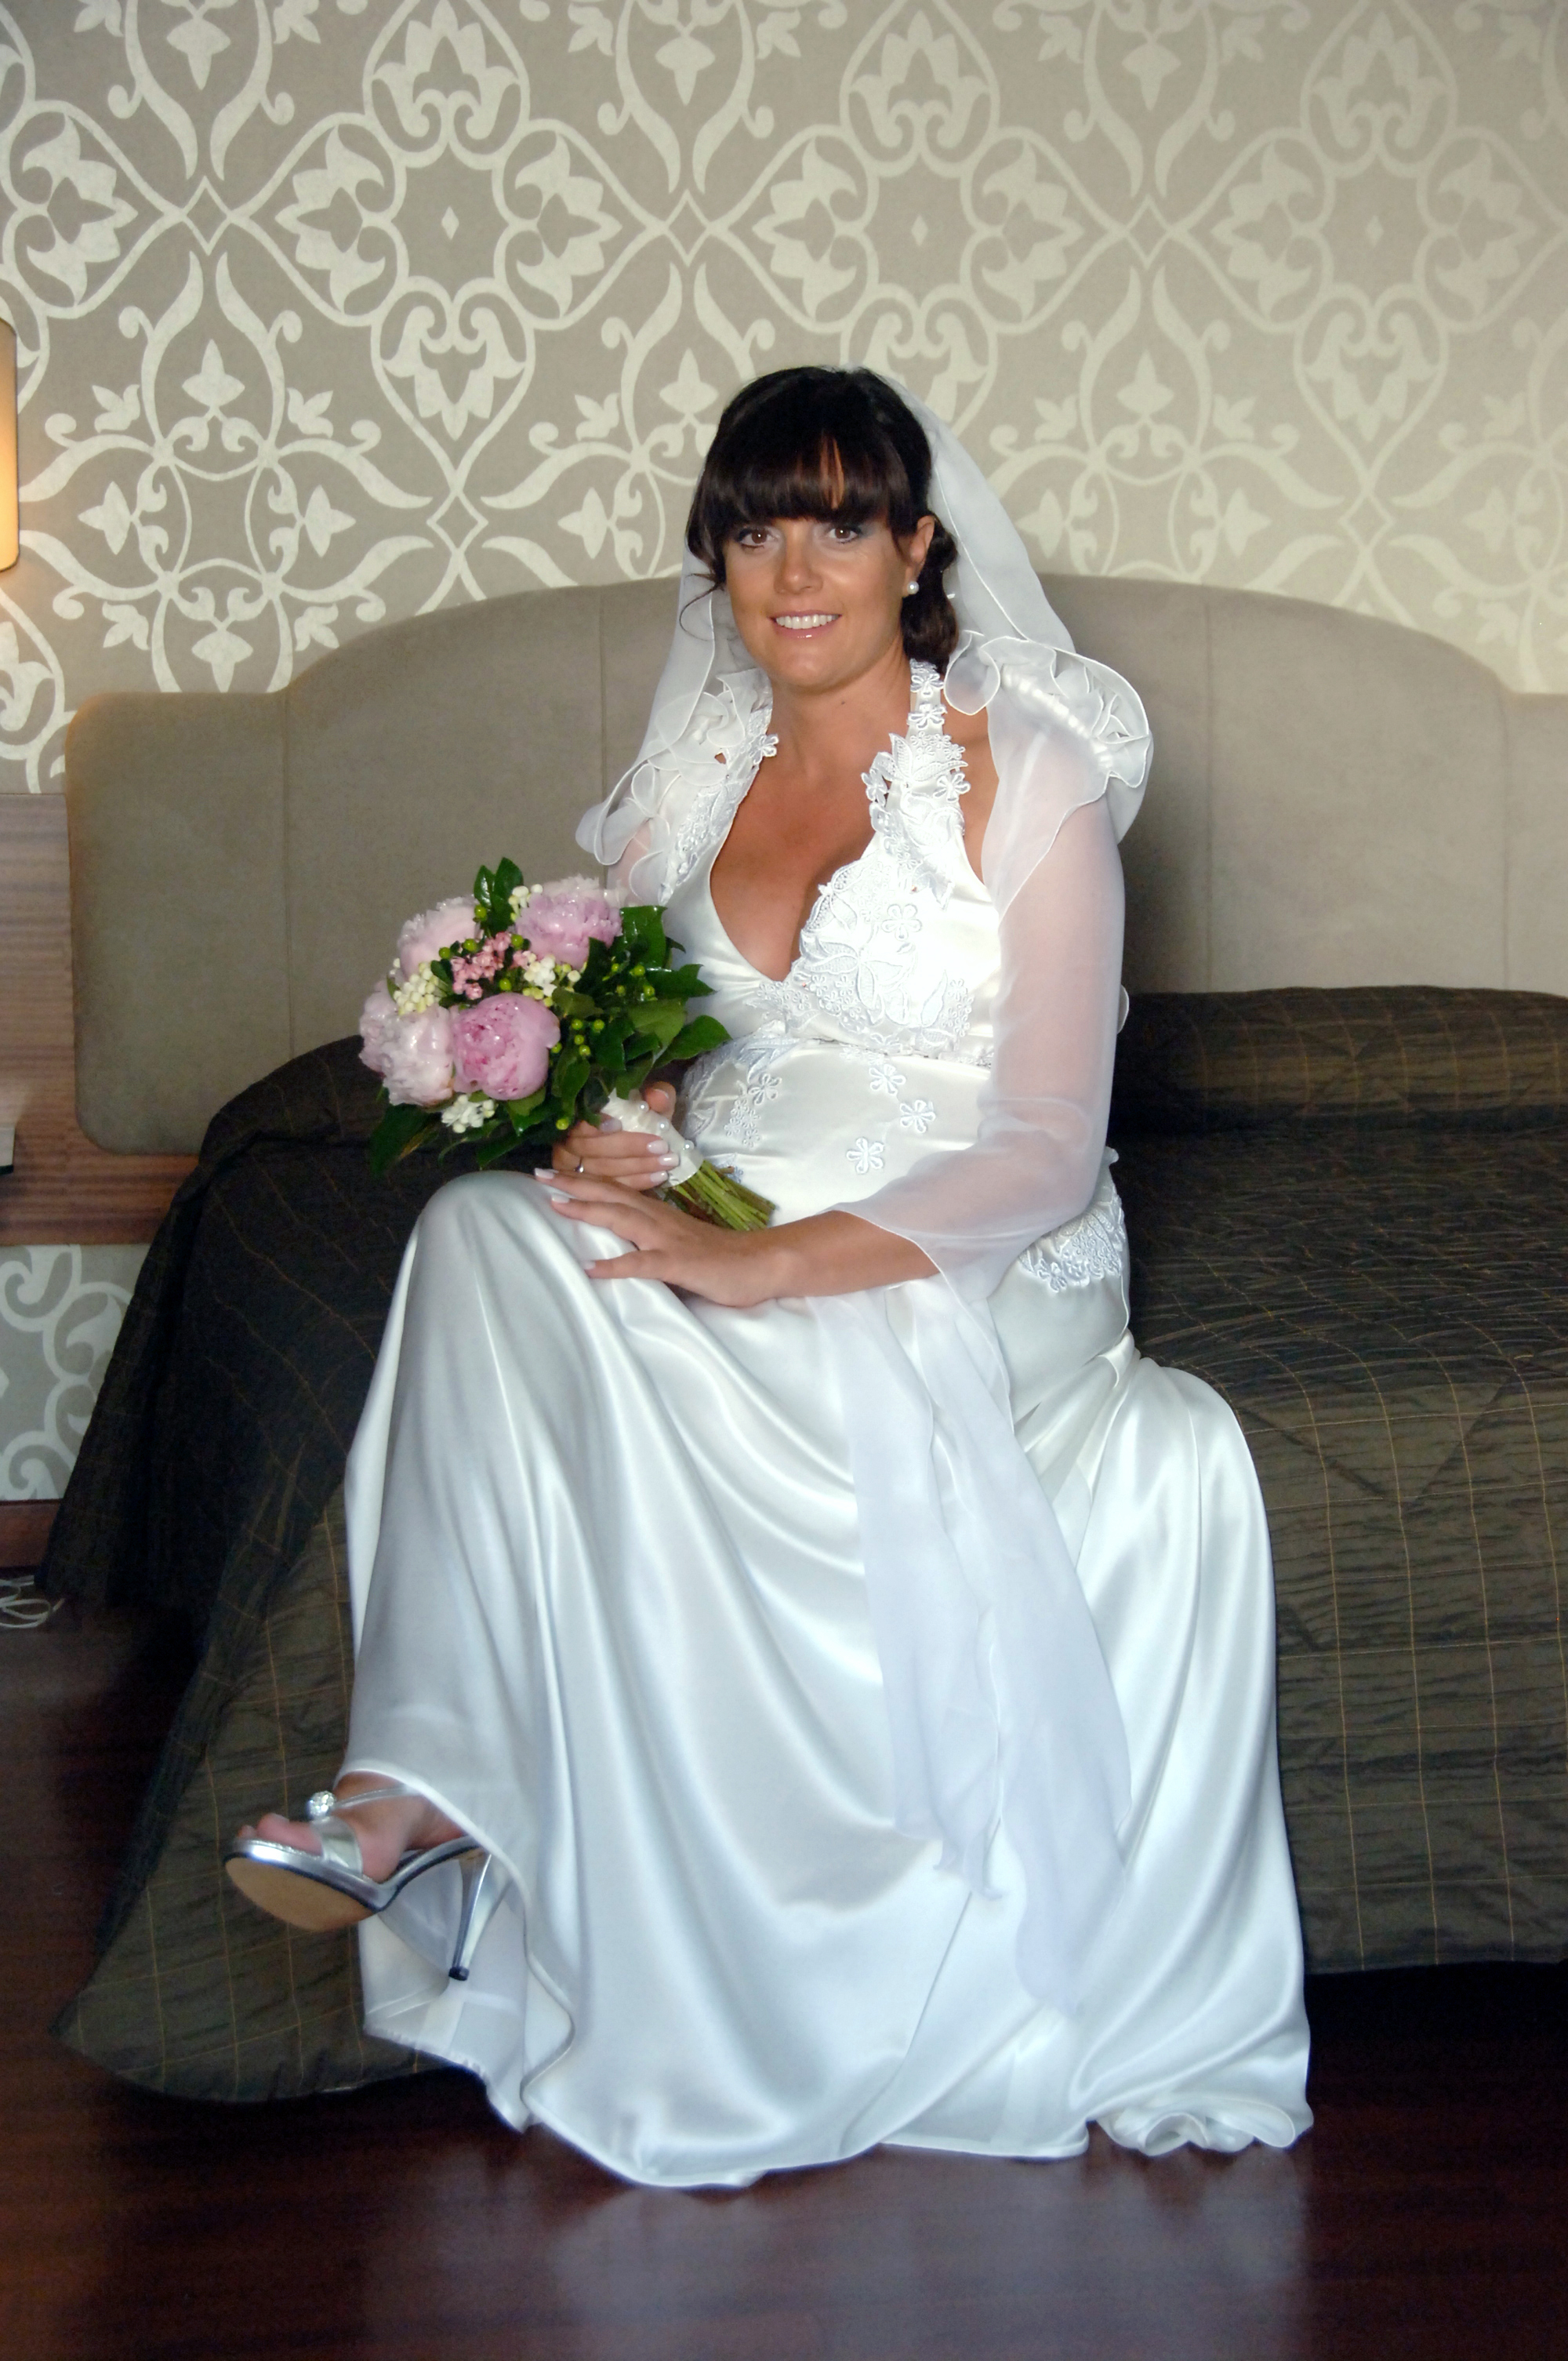 http://www.weddingamalfi.com/wp-content/uploads/Enza-and-Mario-the-bride-is-ready.jpg